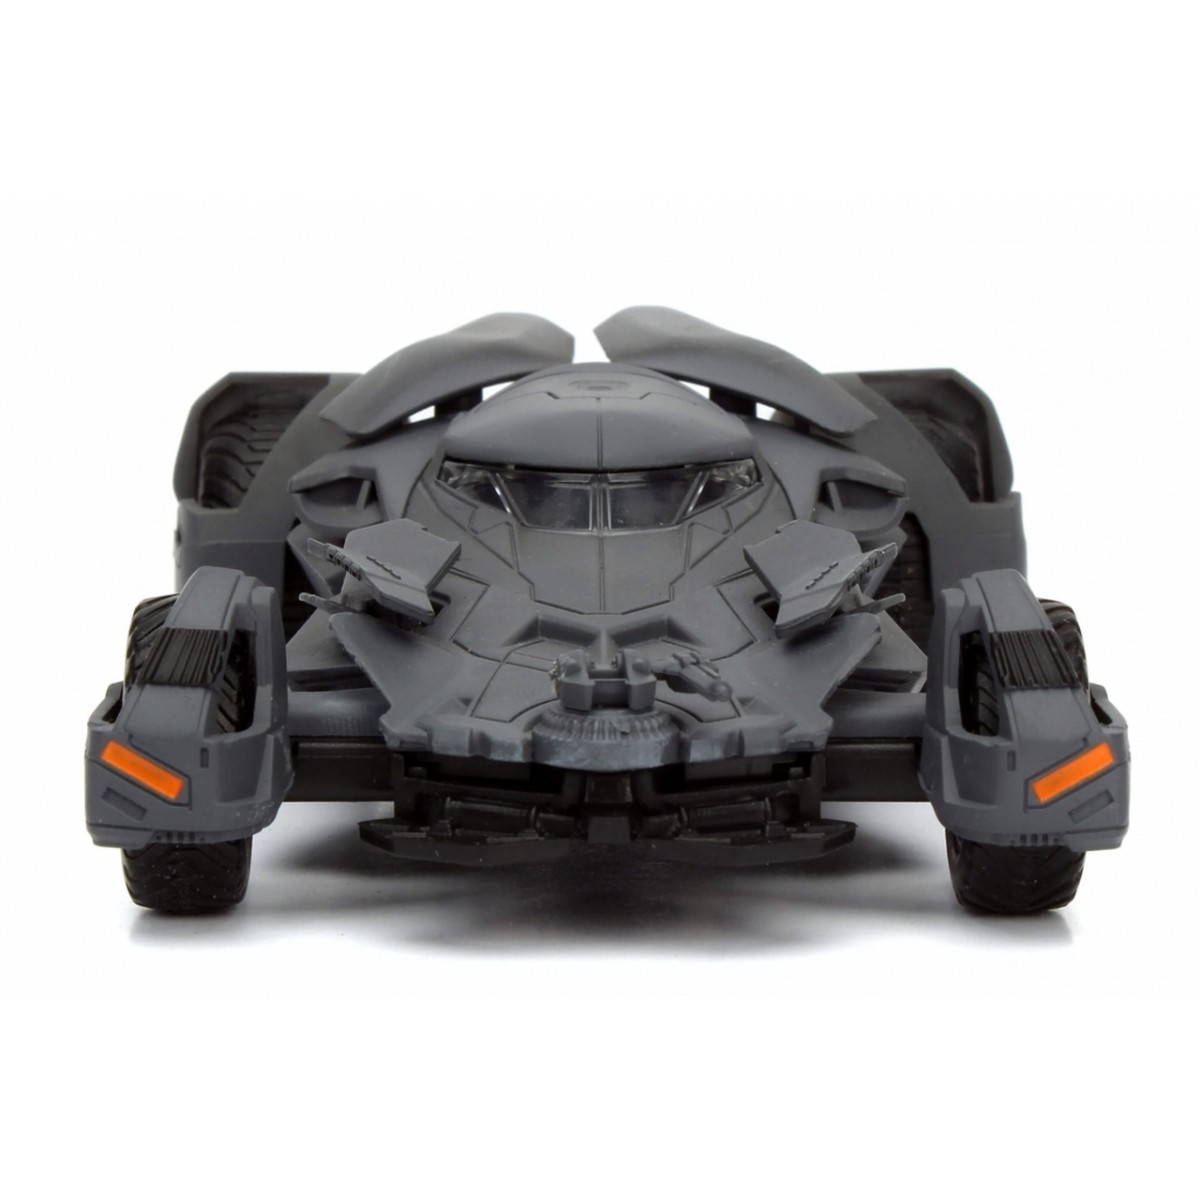 Metals Die Cast Batmobile Batman v Superman: Batman vs Superman: A Origem da Justiça Escala 1/32 - DTC